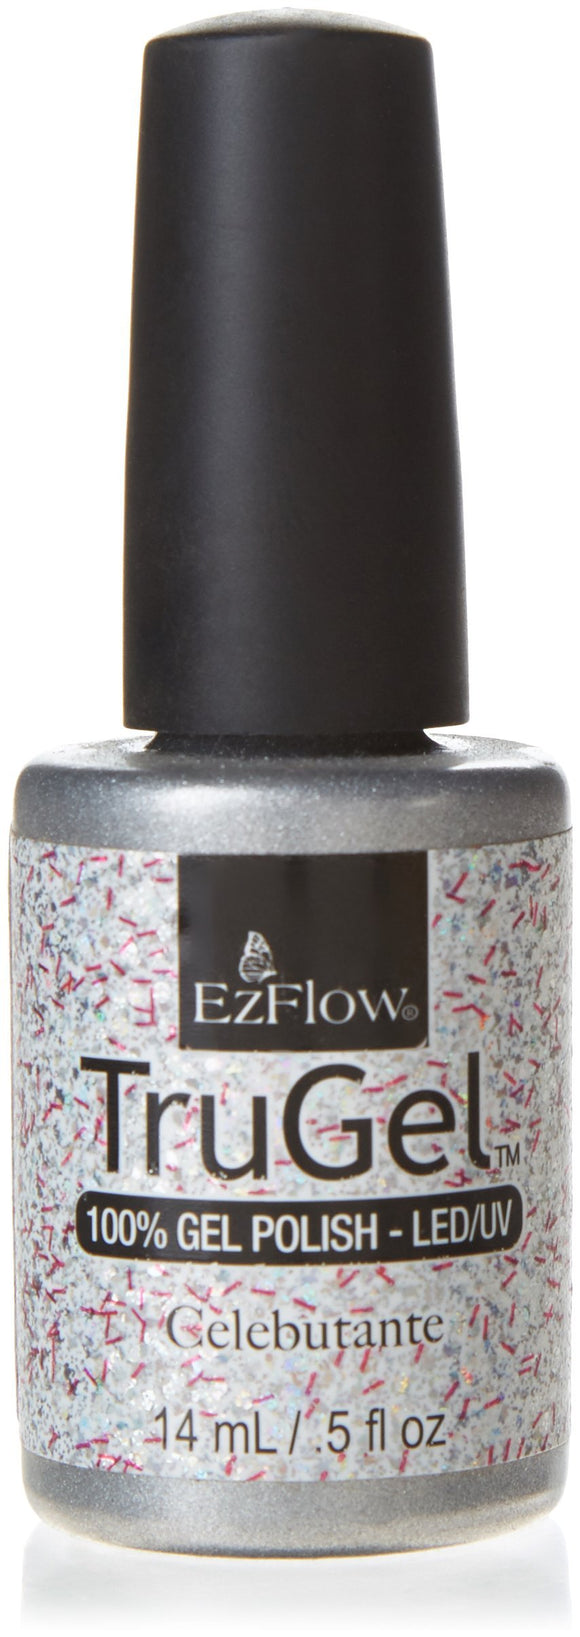 Ez Flow TruGel LED/UV Gel Polish - 14 mL (Celebutante - EZTG42338)